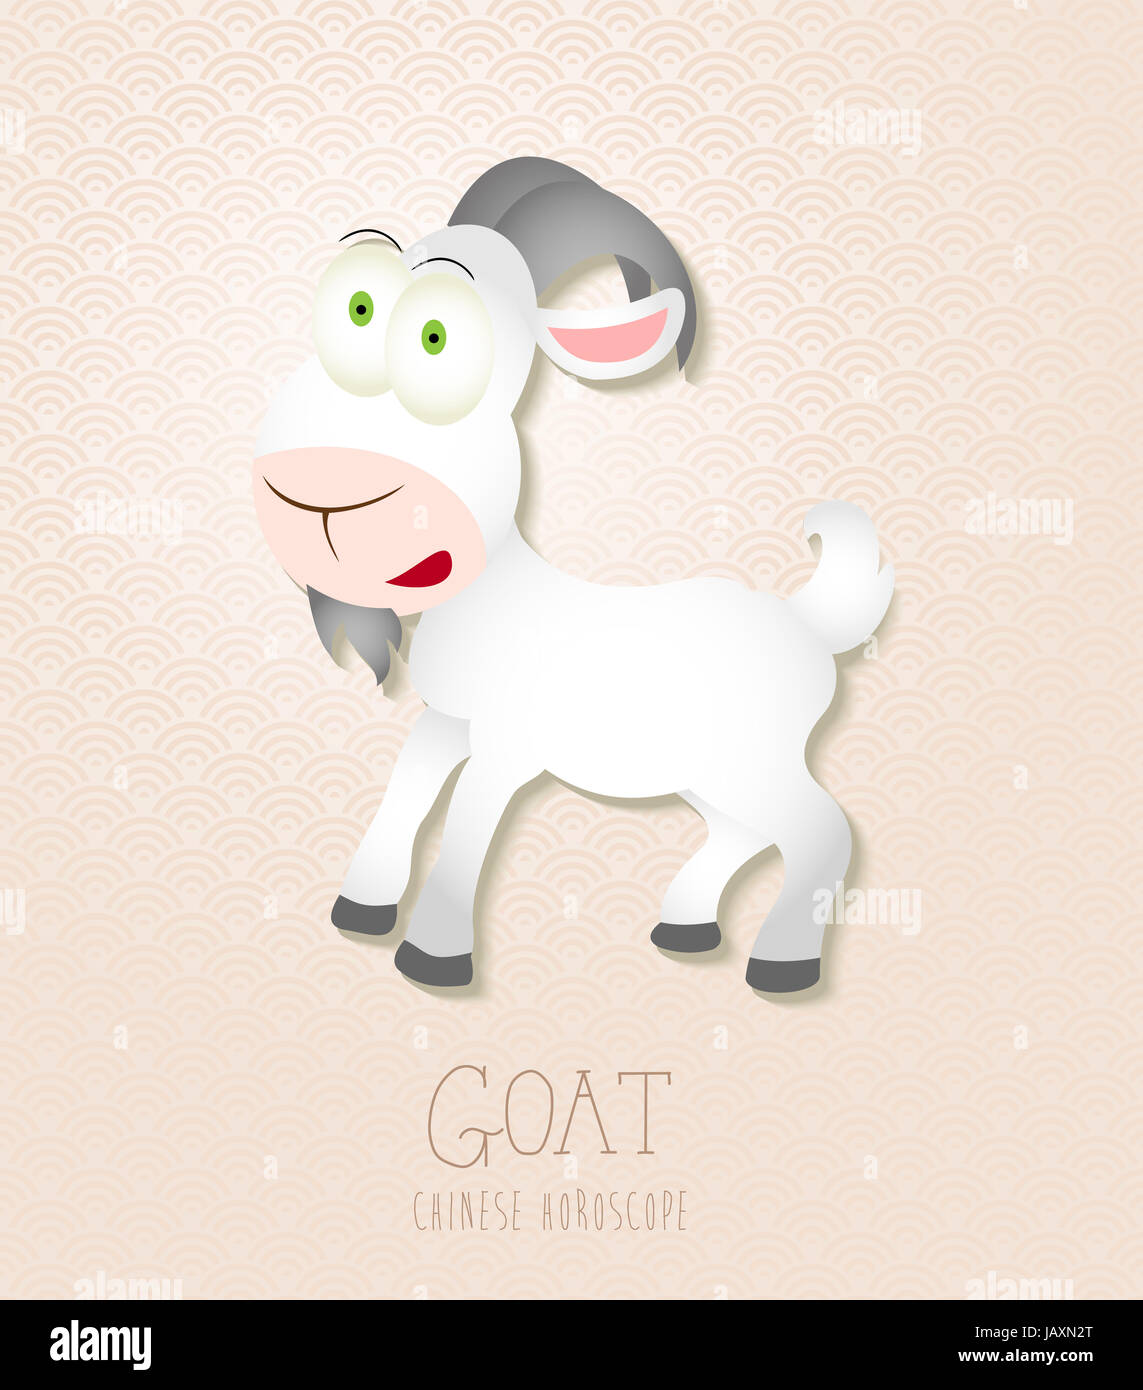 2015 Chinese New Year of the Goat and Sheep funny cartoon zodiac collection illustration. EPS10 vector file with - Stock Image